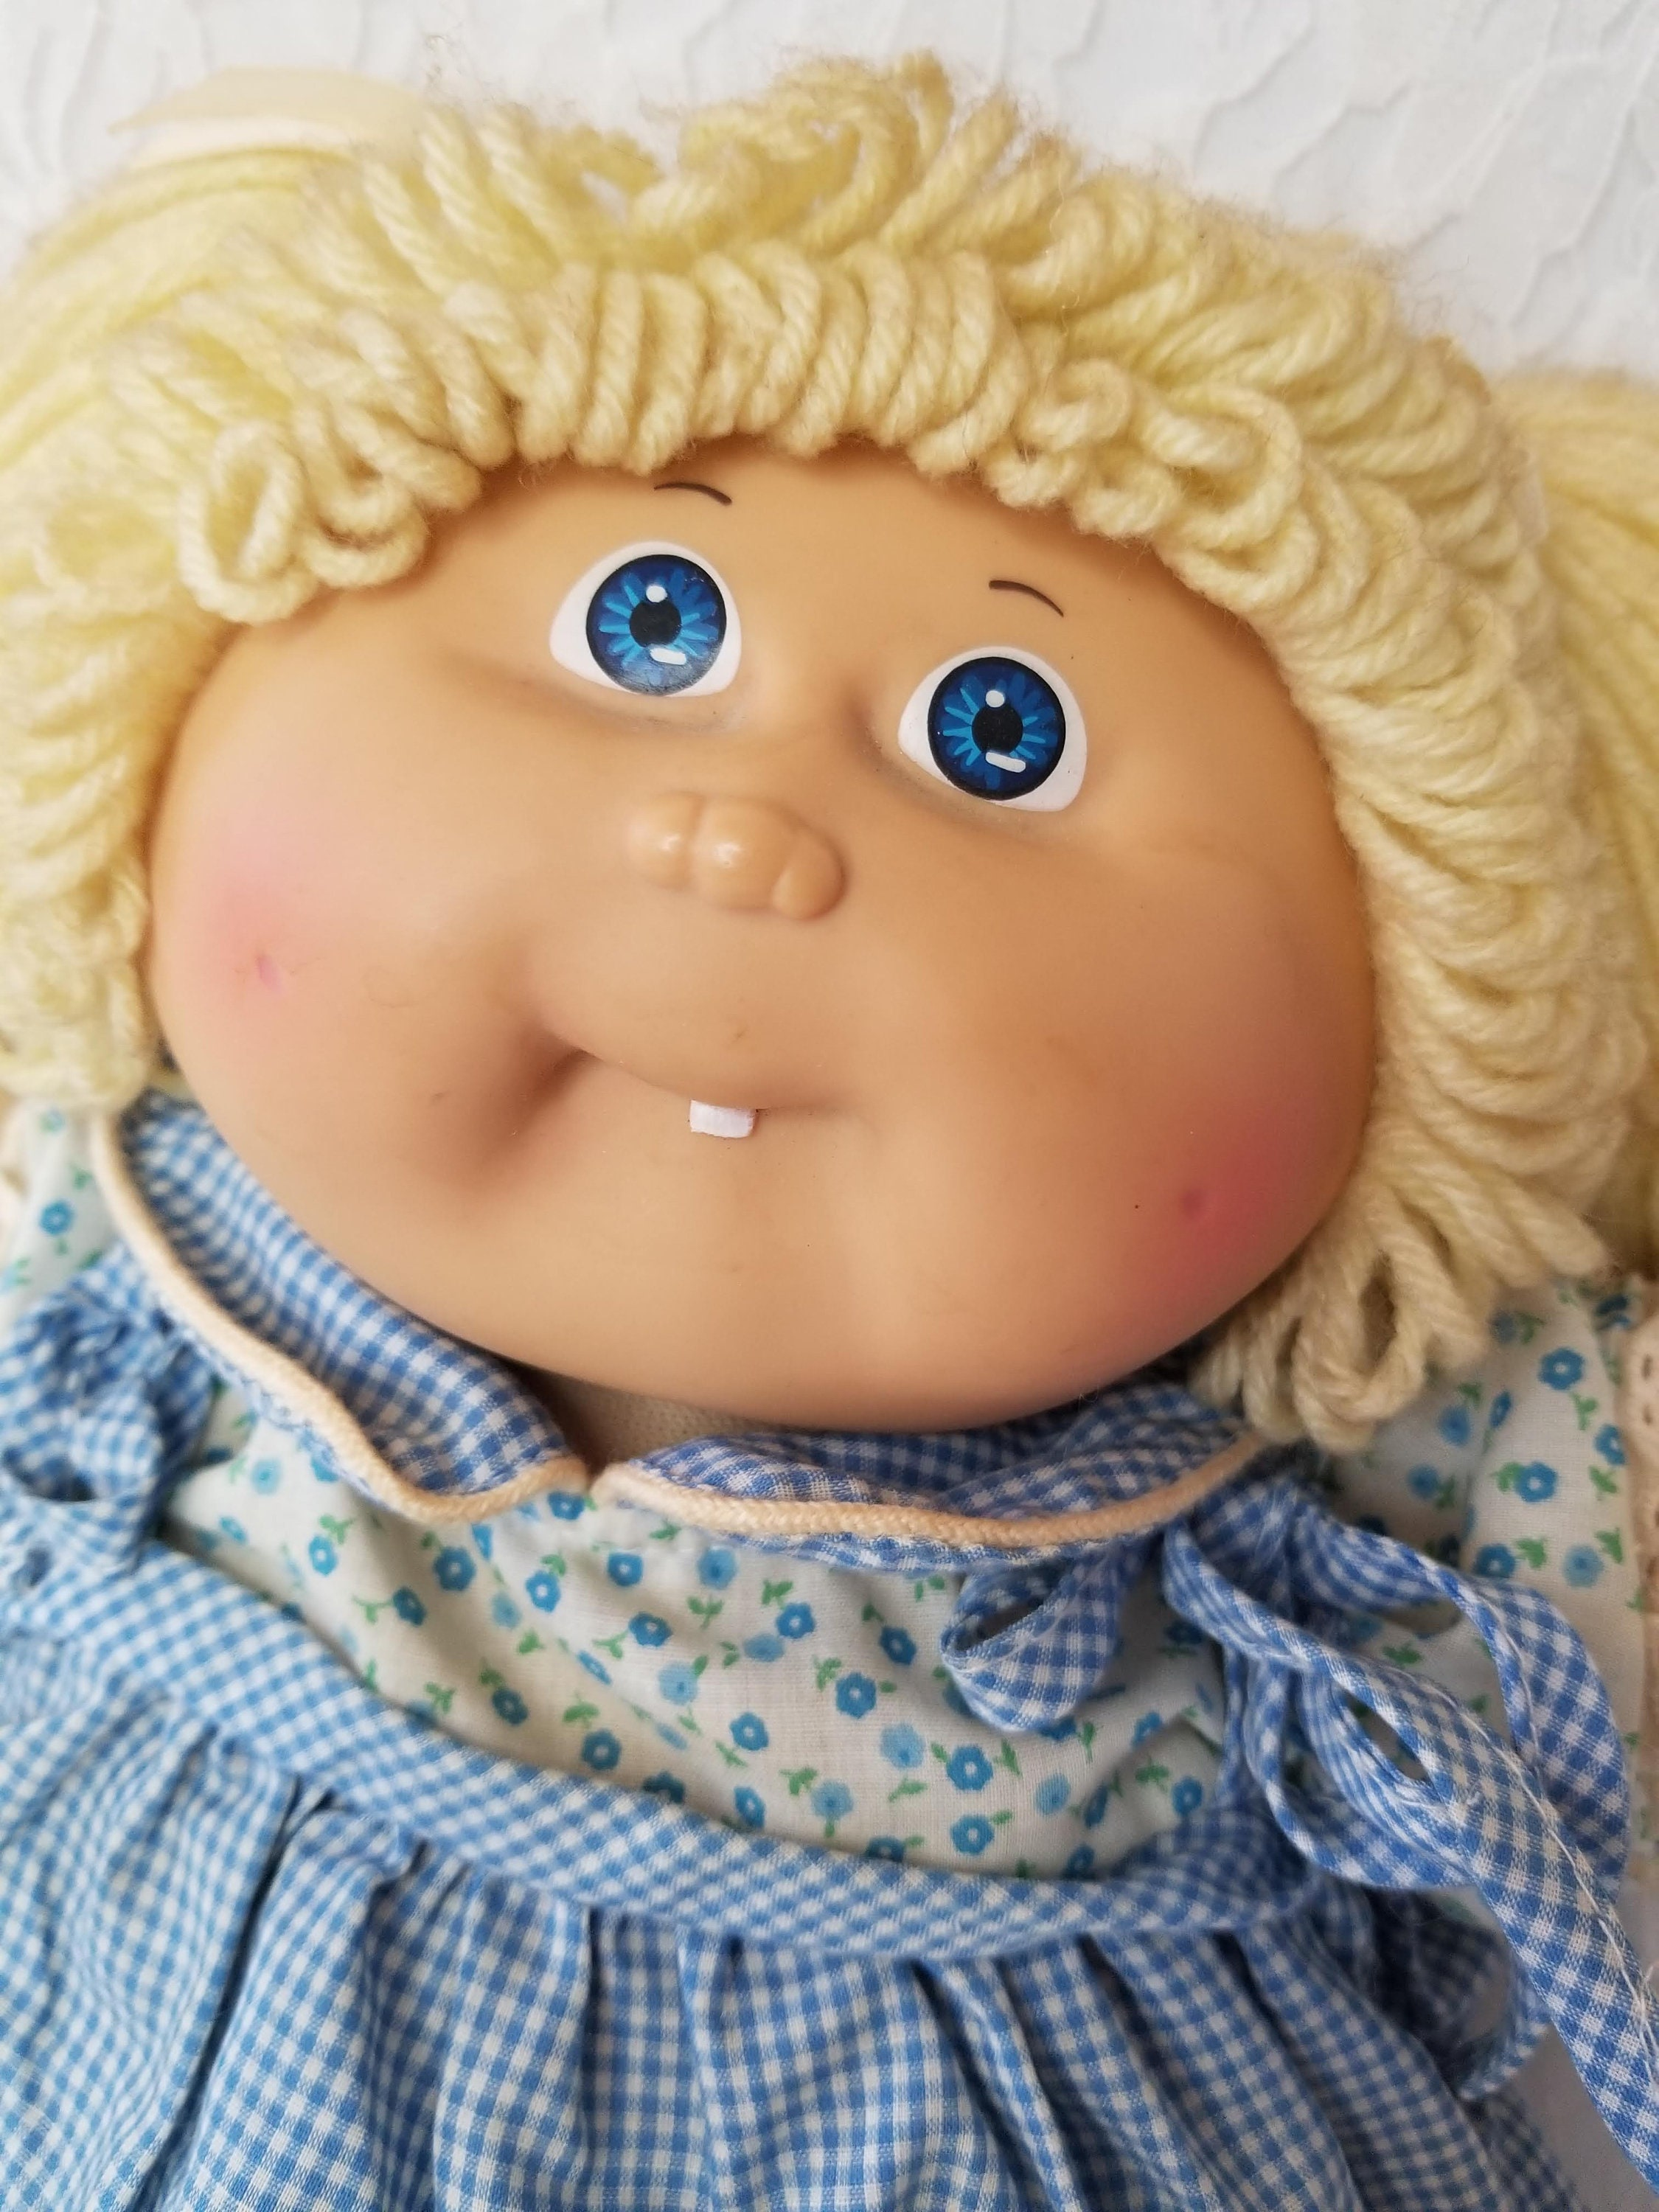 Vintage cabbage patch doll xavier roberts coleco 1985 signed boy.